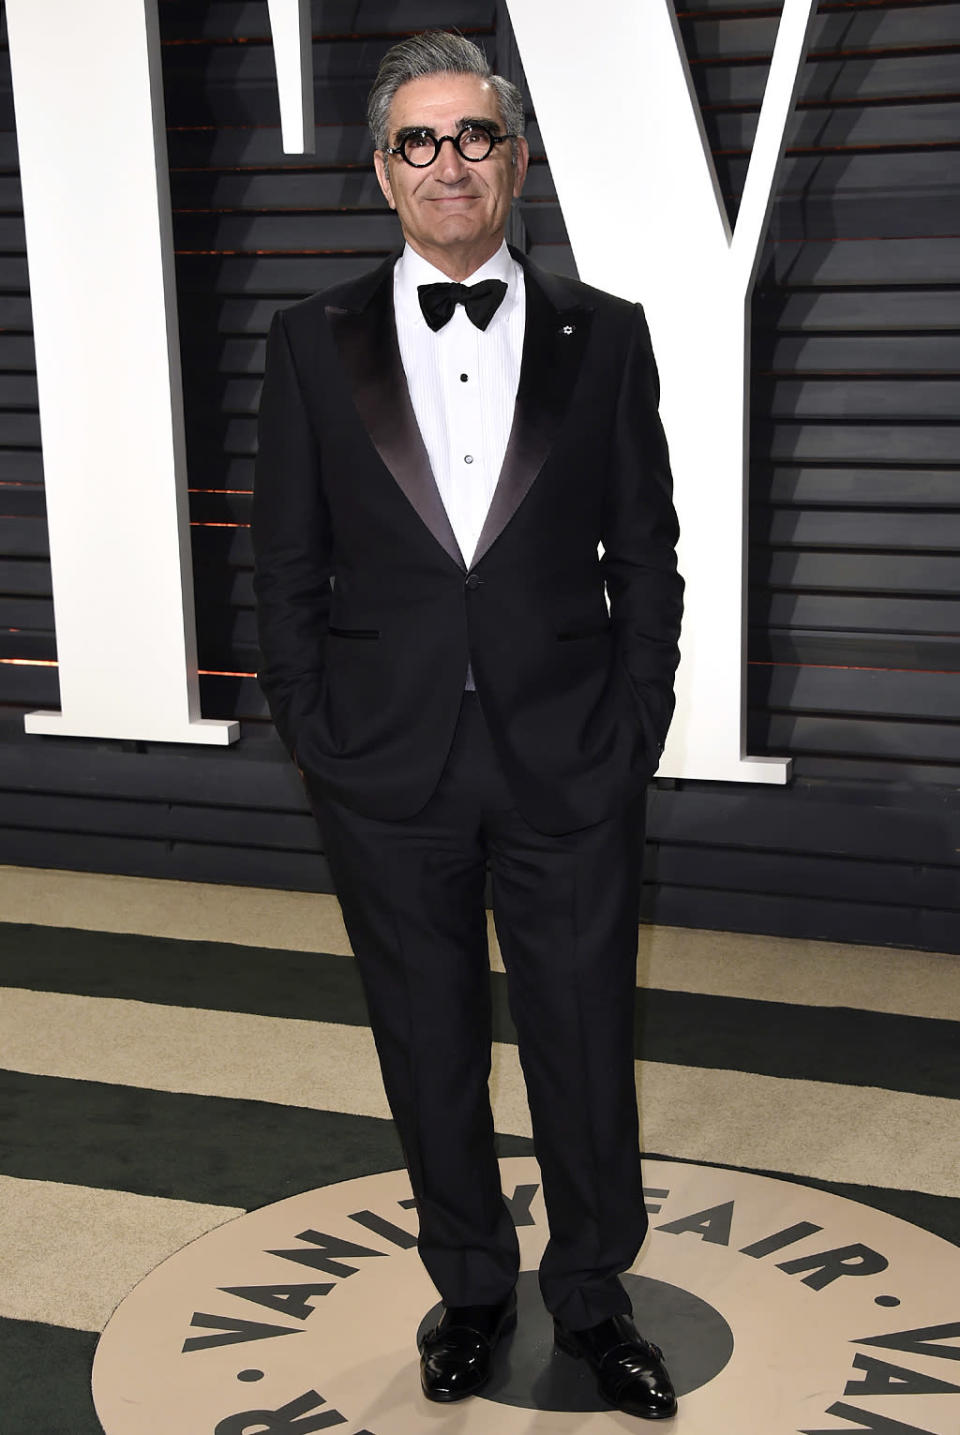 <p>Eugene Levy arrives at the Vanity Fair Oscar Party on Sunday, Feb. 26, 2017, in Beverly Hills, Calif. (Photo by Evan Agostini/Invision/AP) </p>